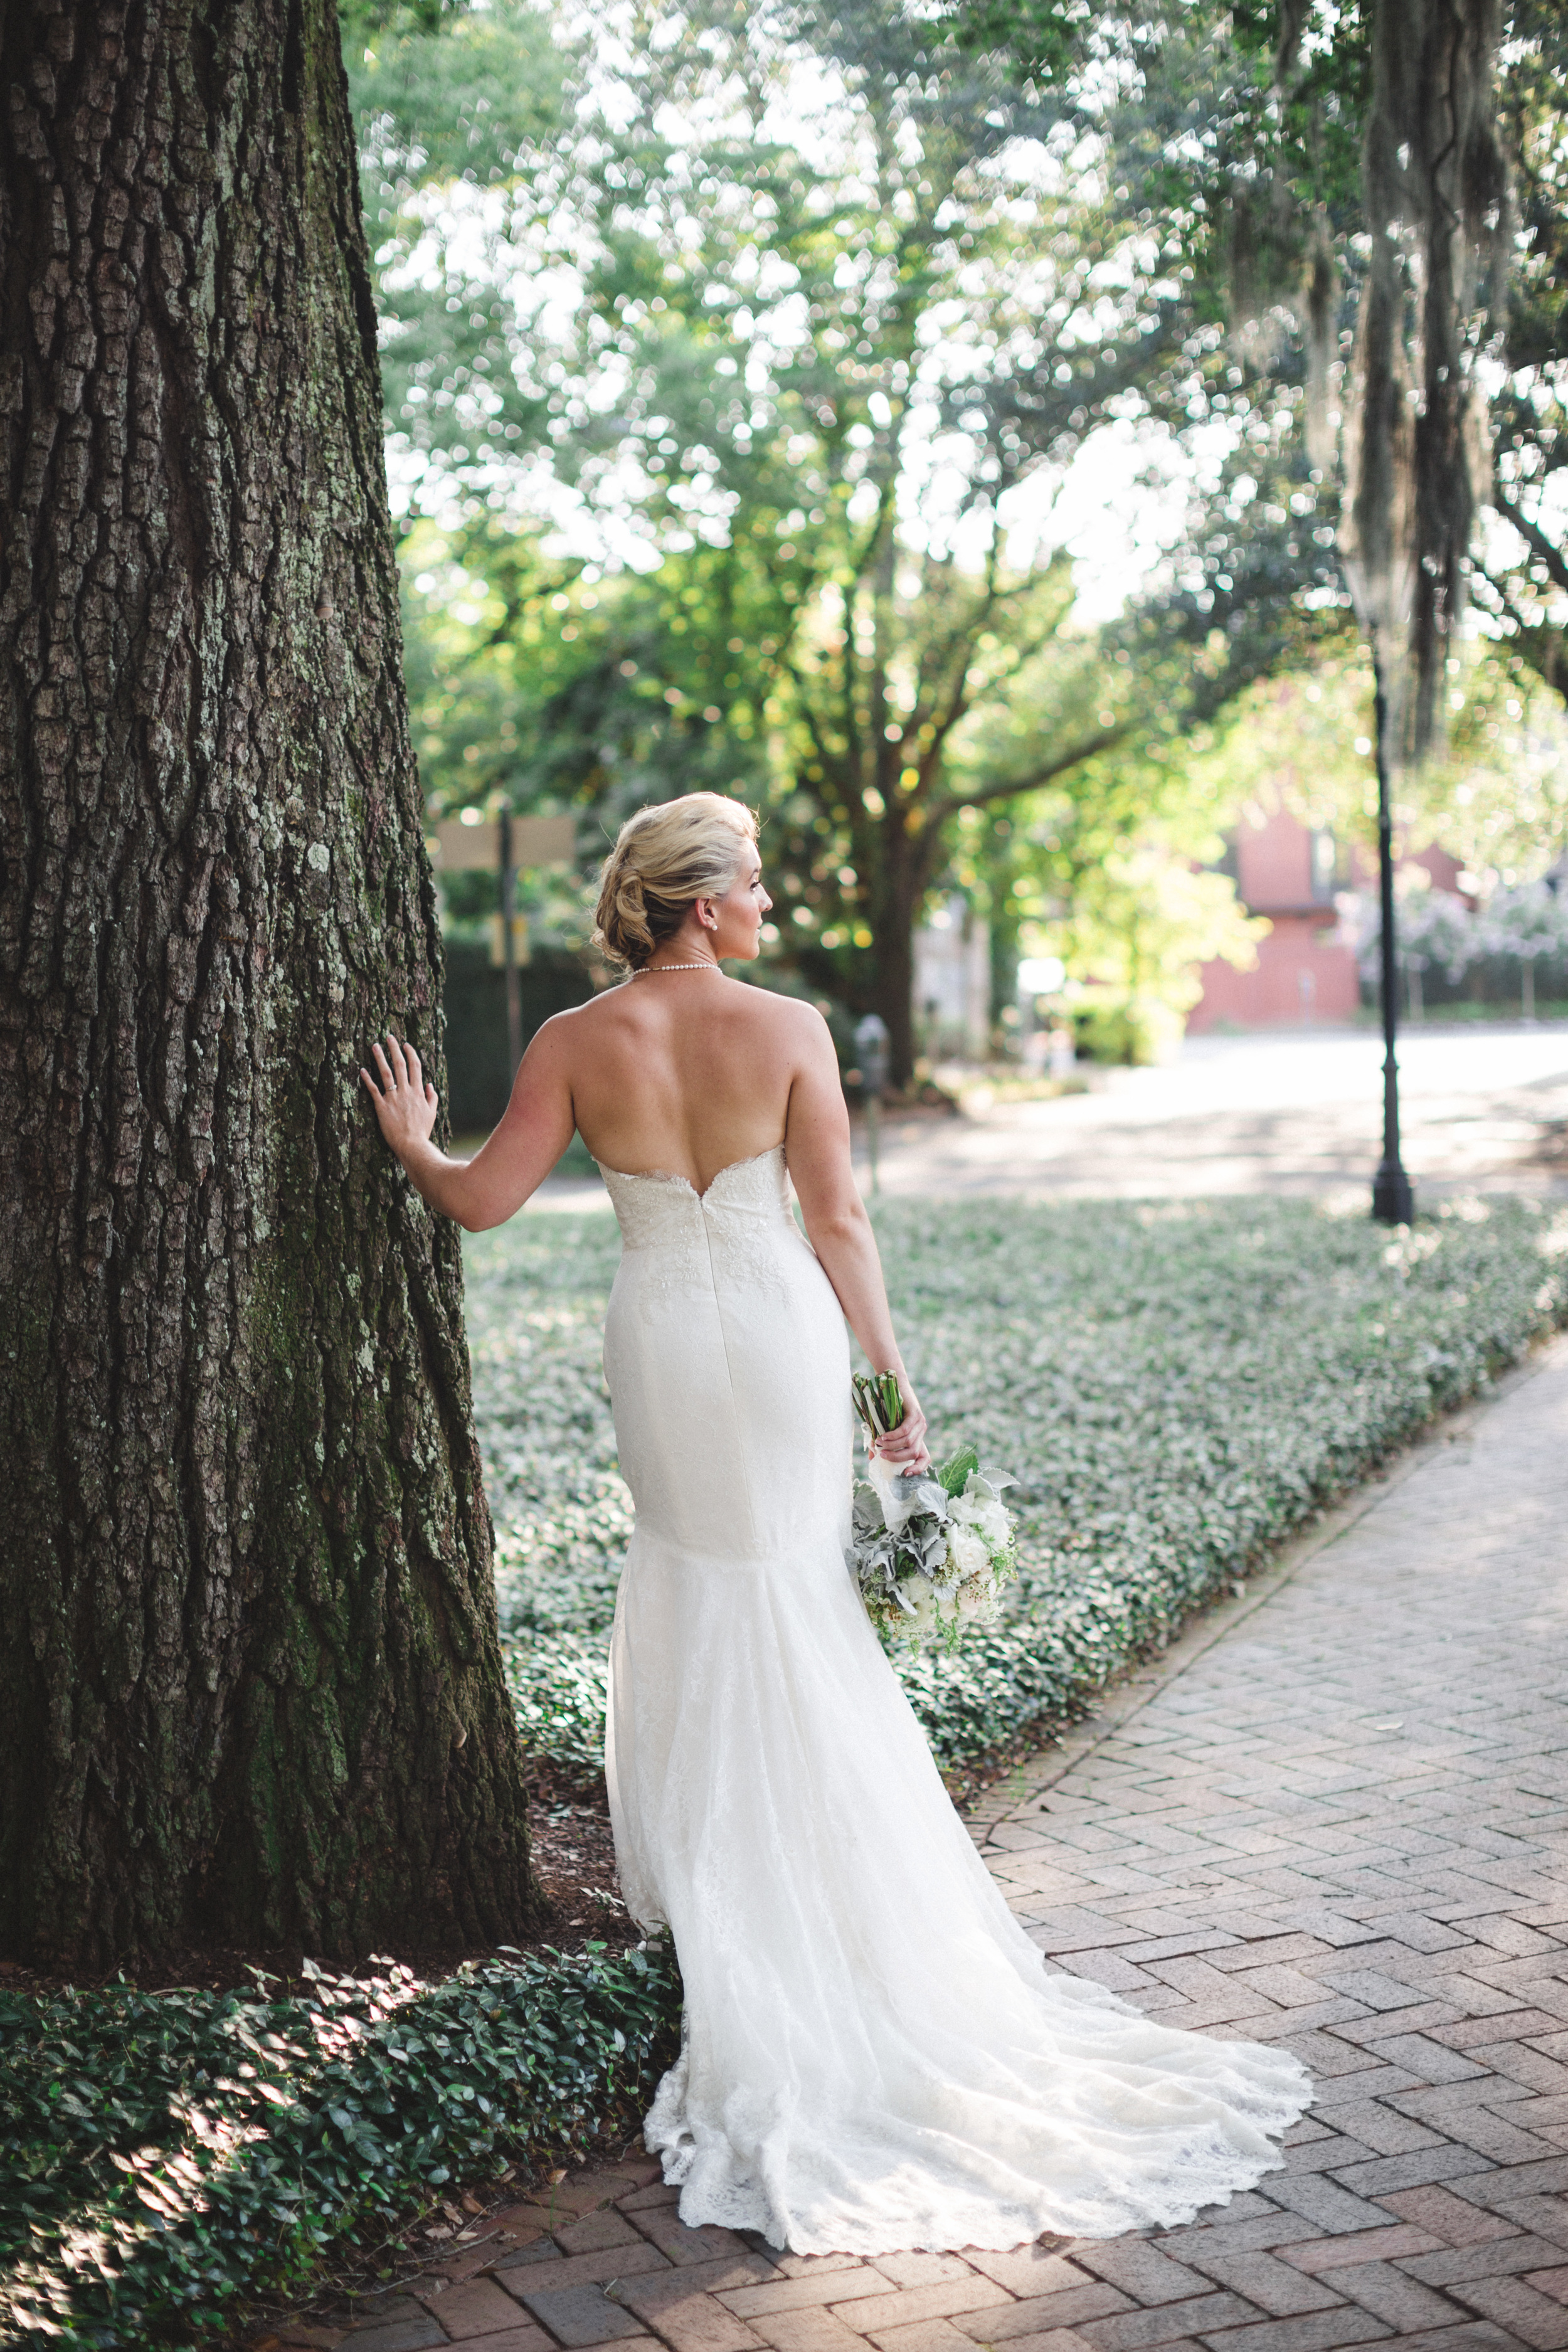 Hillary-and-Brian-izzy-hudgins-photography-anais-anette-tristan-lace-mermaid-wedding-dress-ivory-and-beau-bridal-boutique-savannah-bridal-boutique-savannah-wedding-dresses-savannah-bridal-gowns-savannah-wedding-dresses-first-babtist-savannah-29.jpg